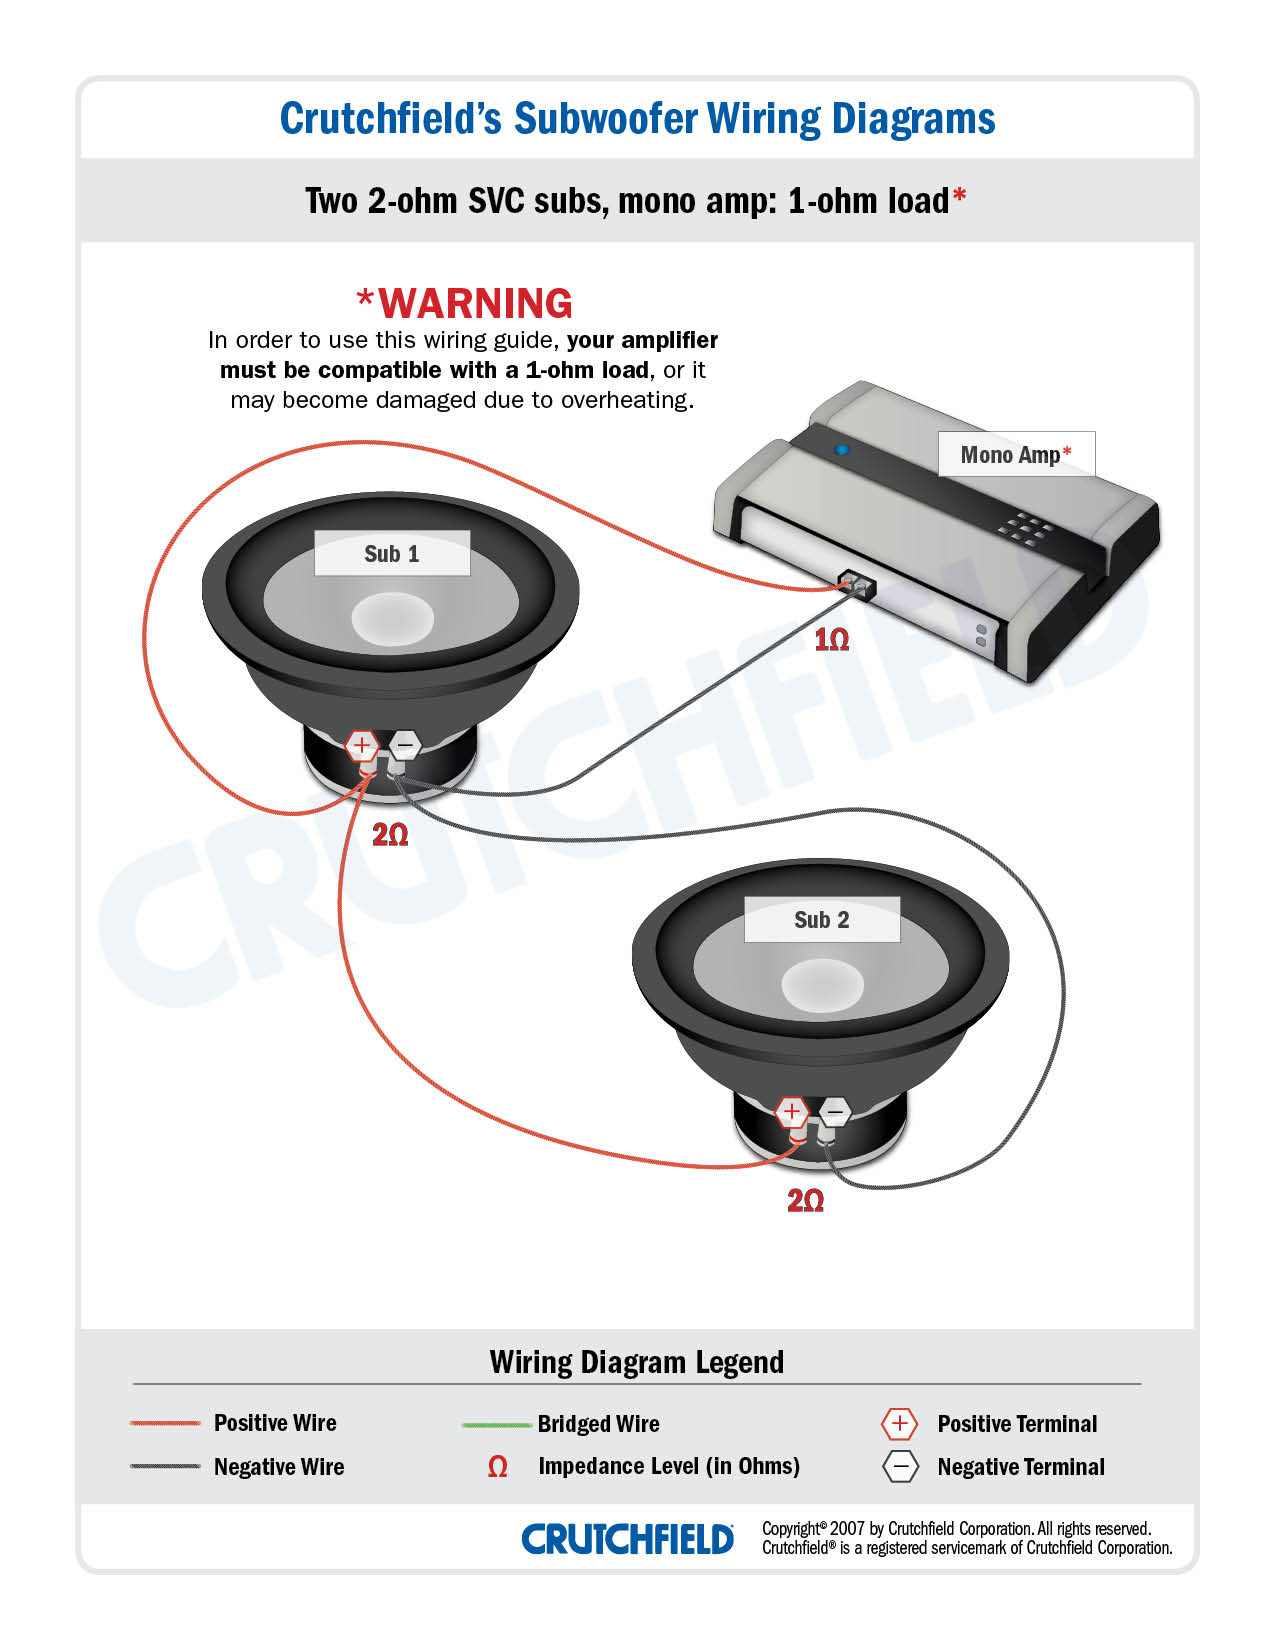 2 SVC 2 ohm mono low imp wiring subwoofers what's all this about ohms? Alpine Type R Wiring Diagram at gsmportal.co